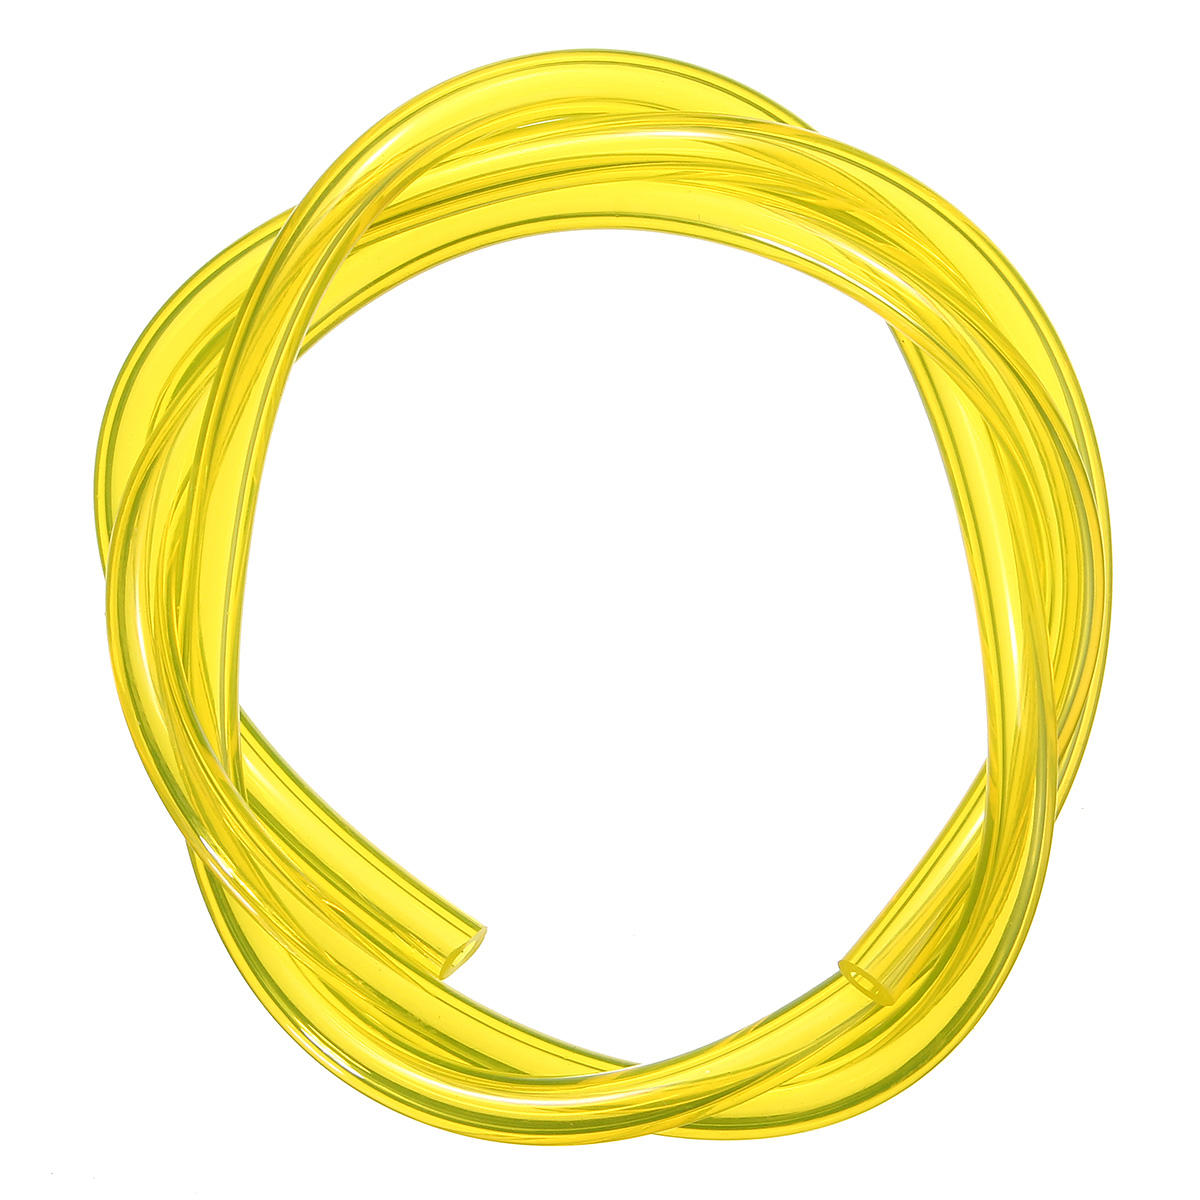 2.5x5mm Fuel Hose Fuel Filter Hose For Mower Motorcycle Scooter Brushcutter фото